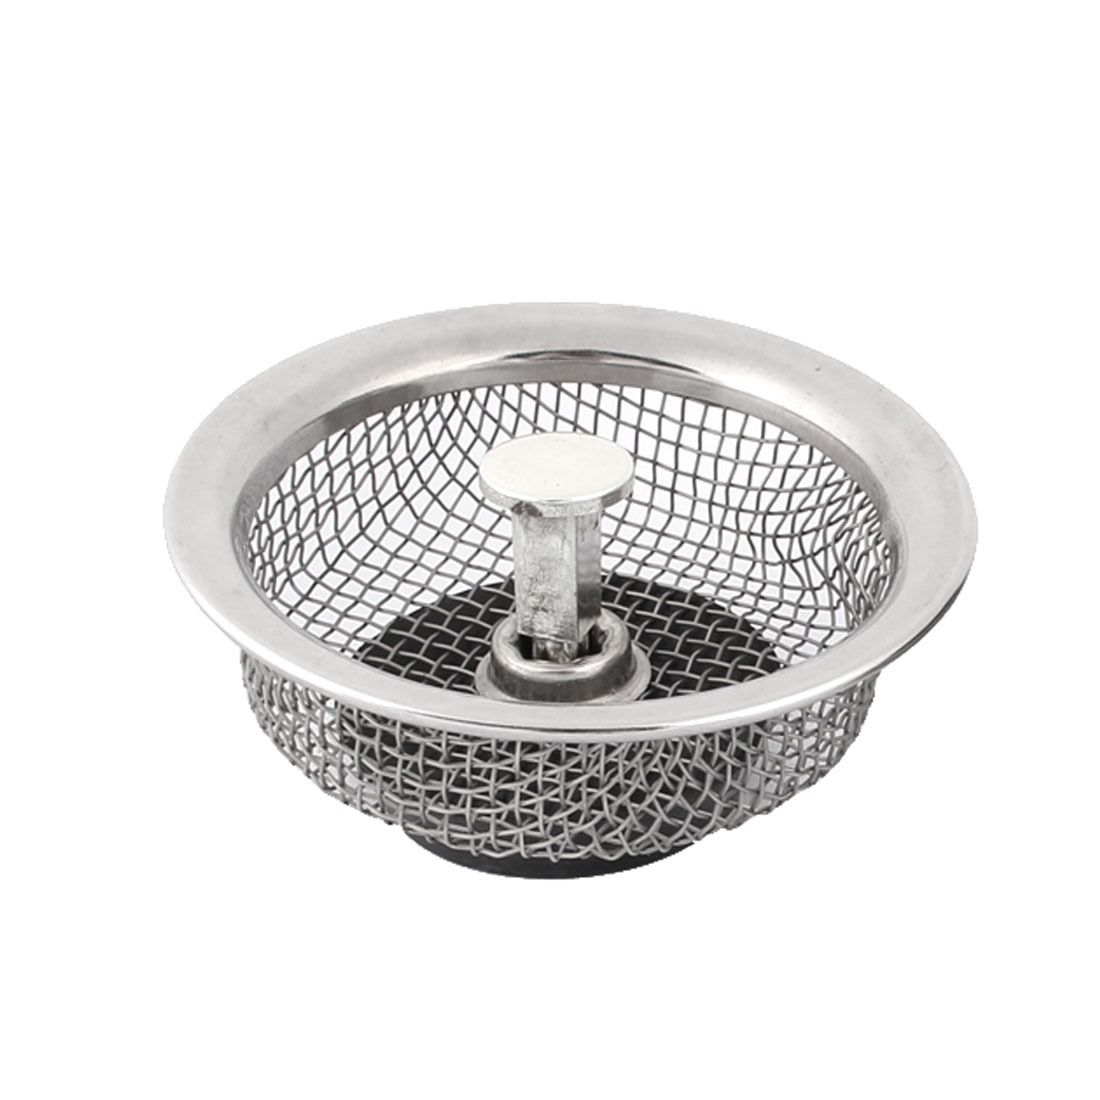 Household Kitchen Stainless Steel Round Shape Mesh Screen Sink Strainer 8.5cm Dia